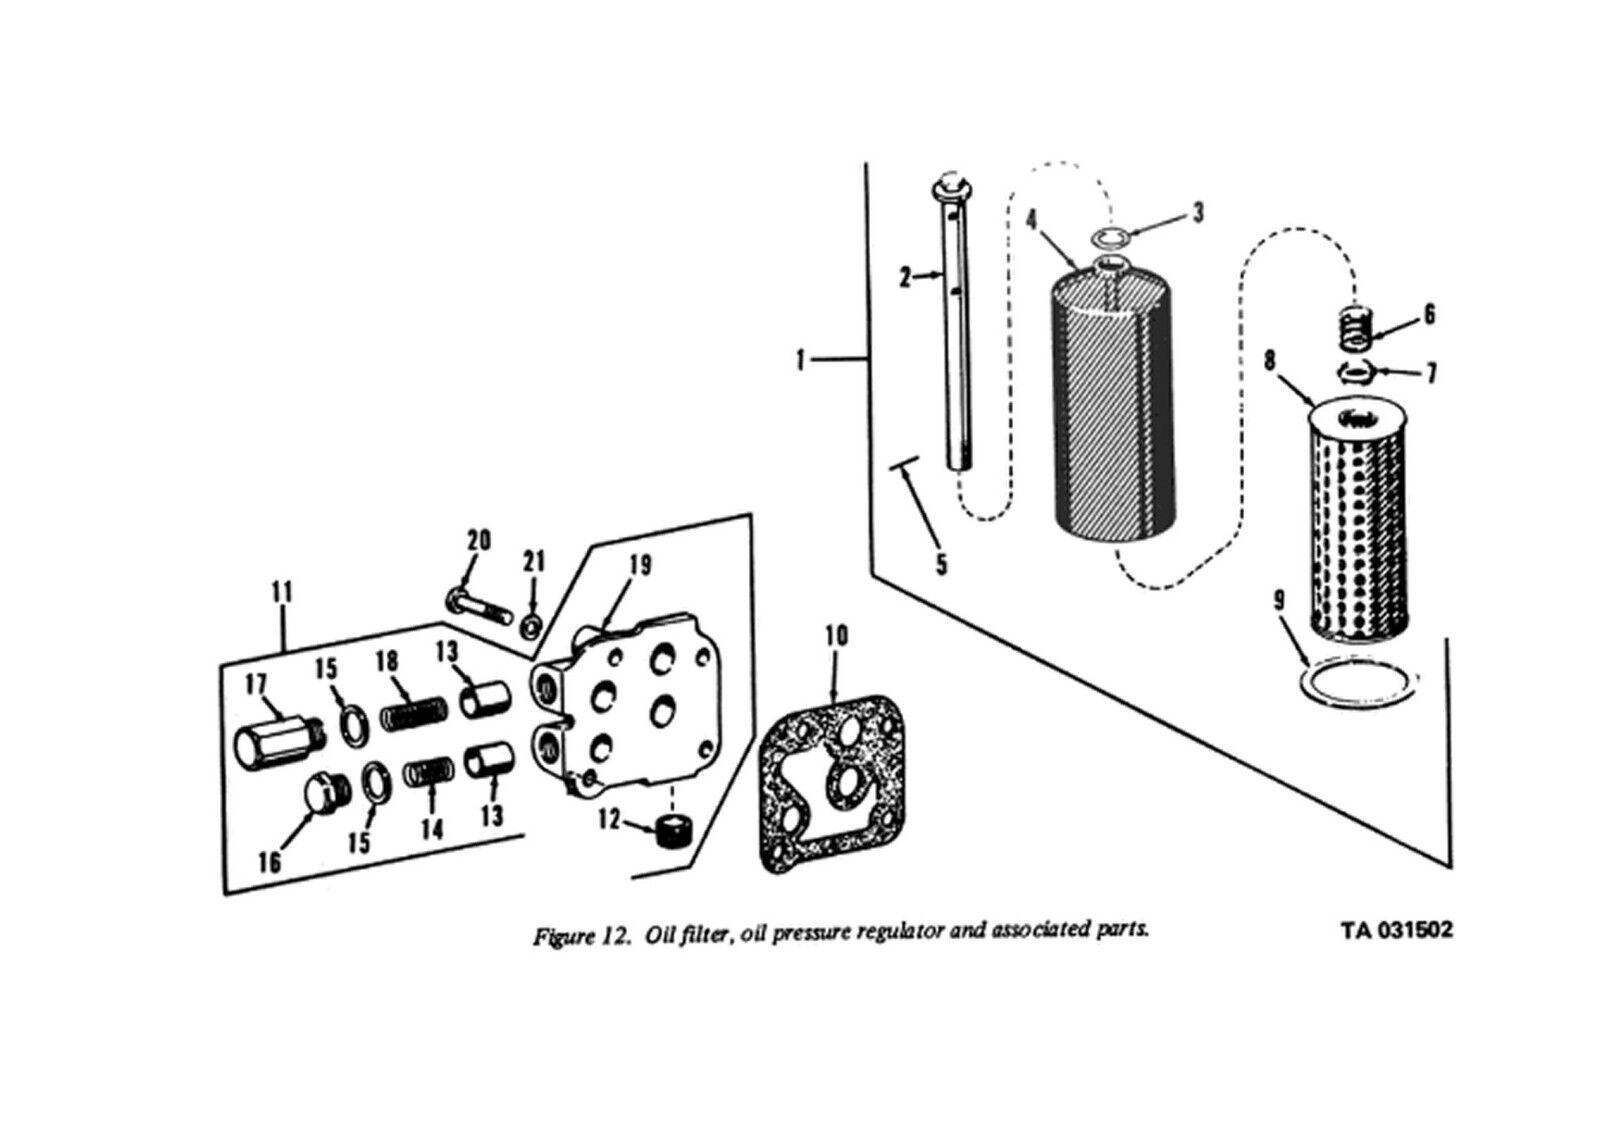 M35a2 Oil Filter Diagram Car Wiring Diagrams Explained Harness 2940 00 194 2497 And Housing For M54a2 Hercules Rh Ebay Com